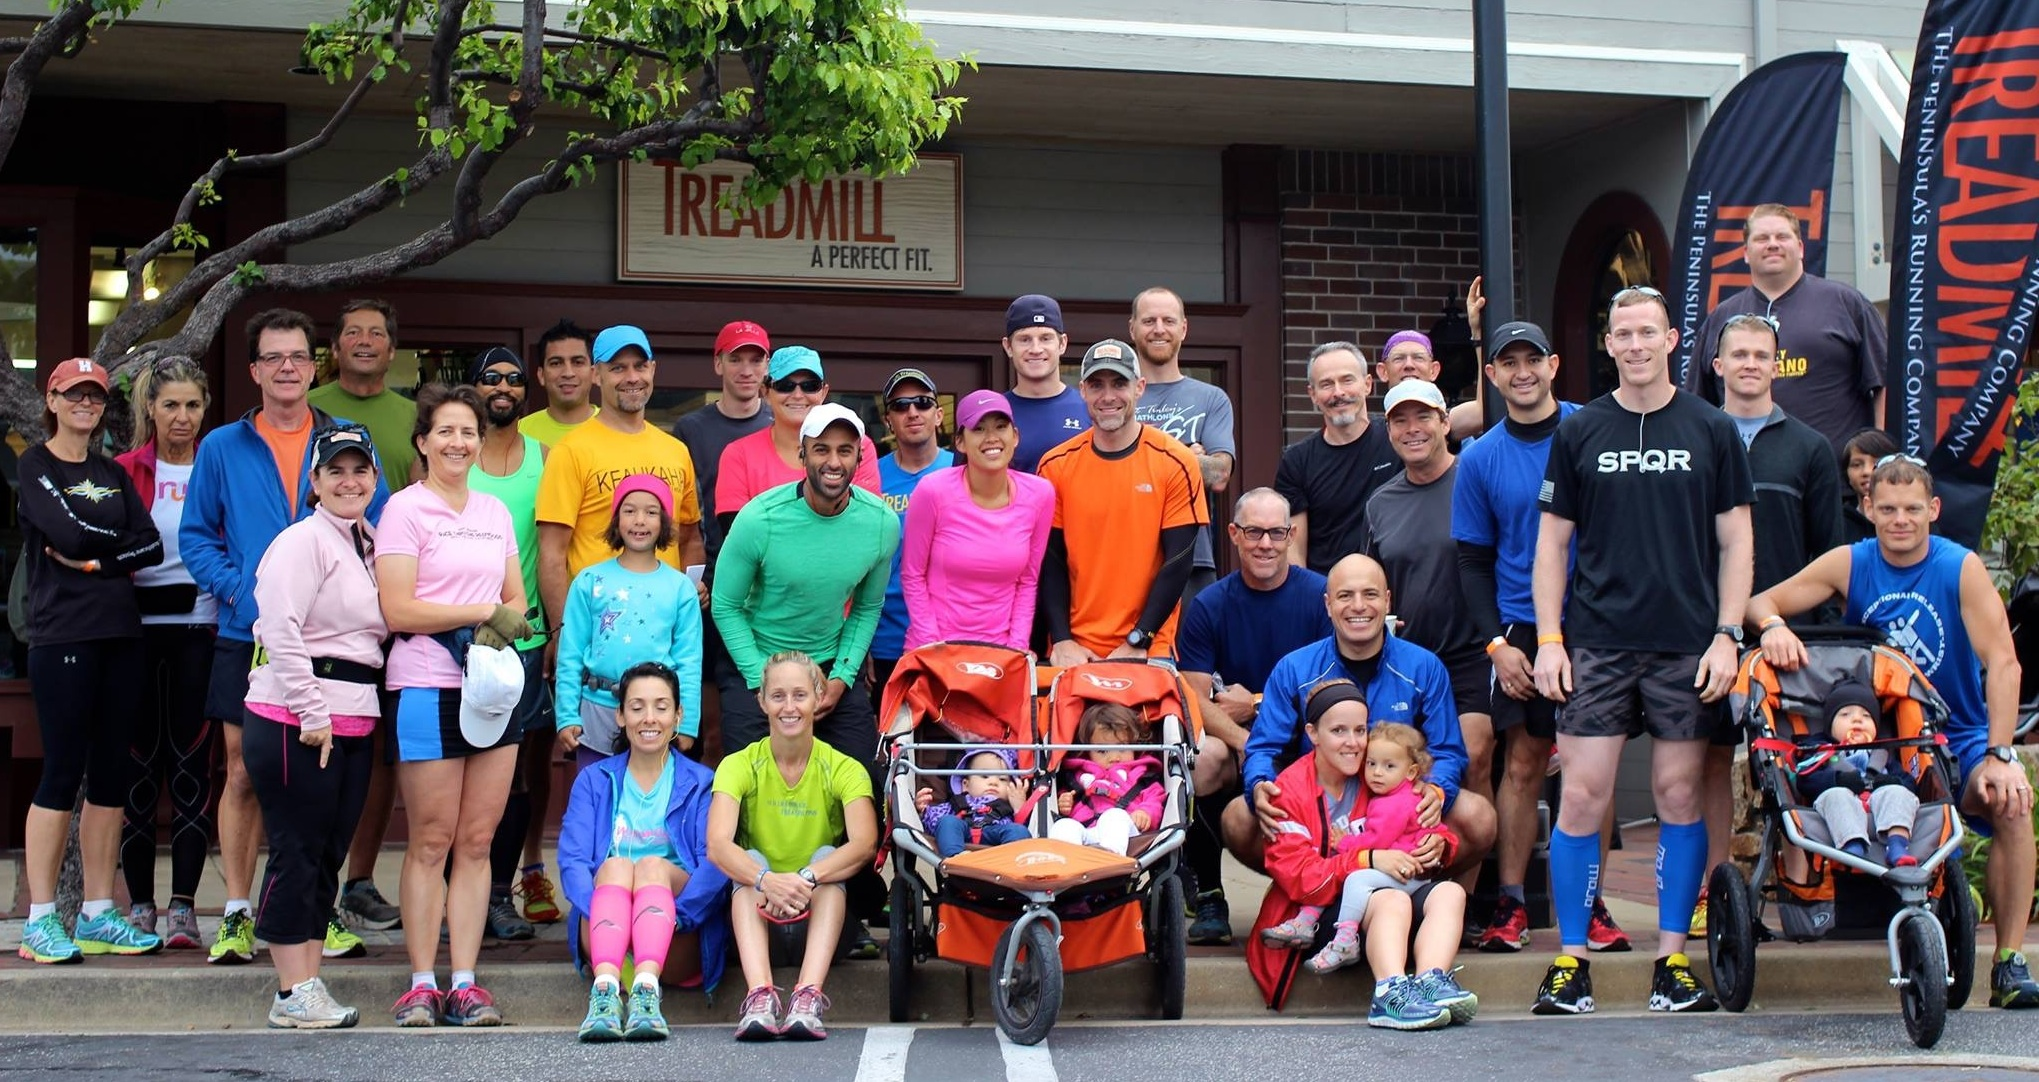 treadmill group photo